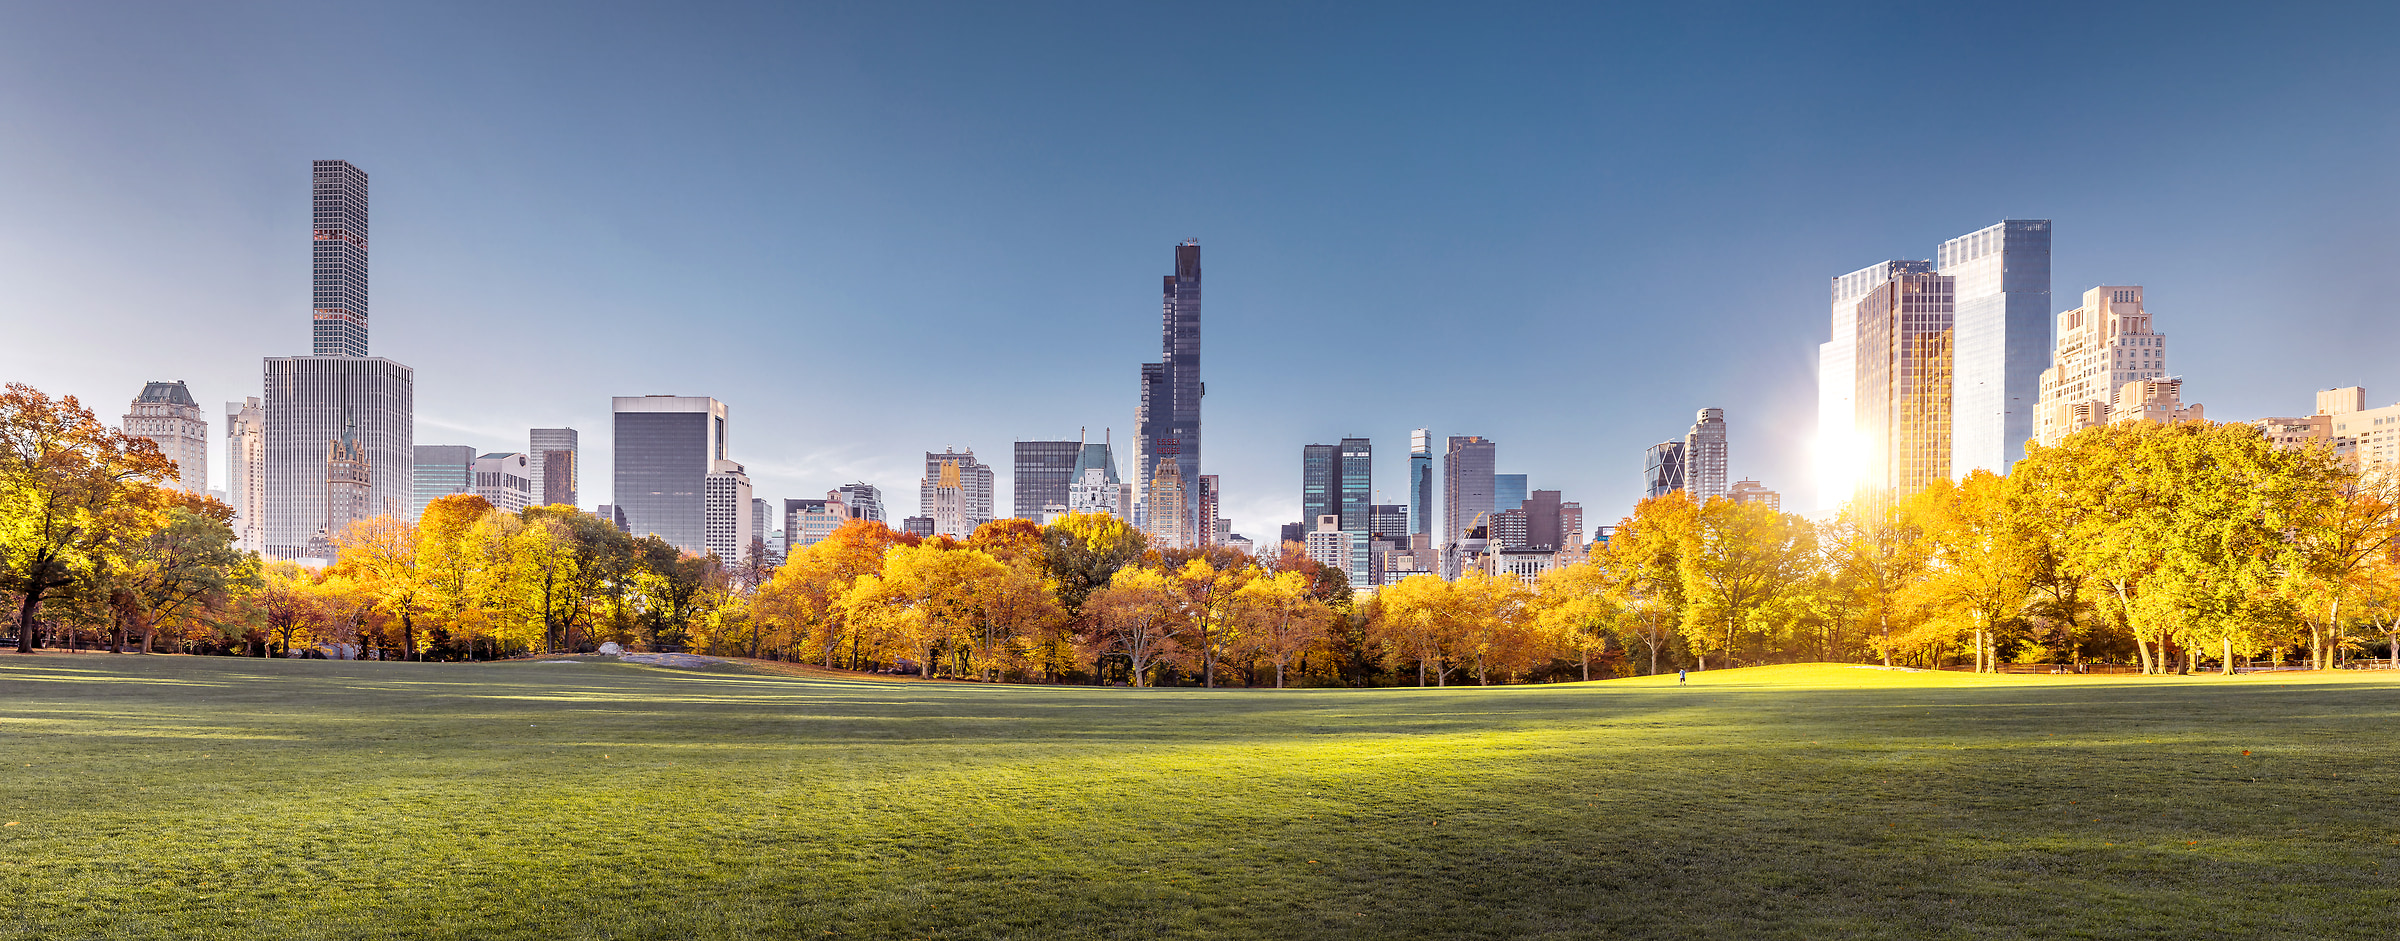 160 megapixels! A very high resolution landscape VAST photo of Sheep Meadow and the Manhattan skyline in Central Park at sunrise during autumn; created in New York City by Dan Piech